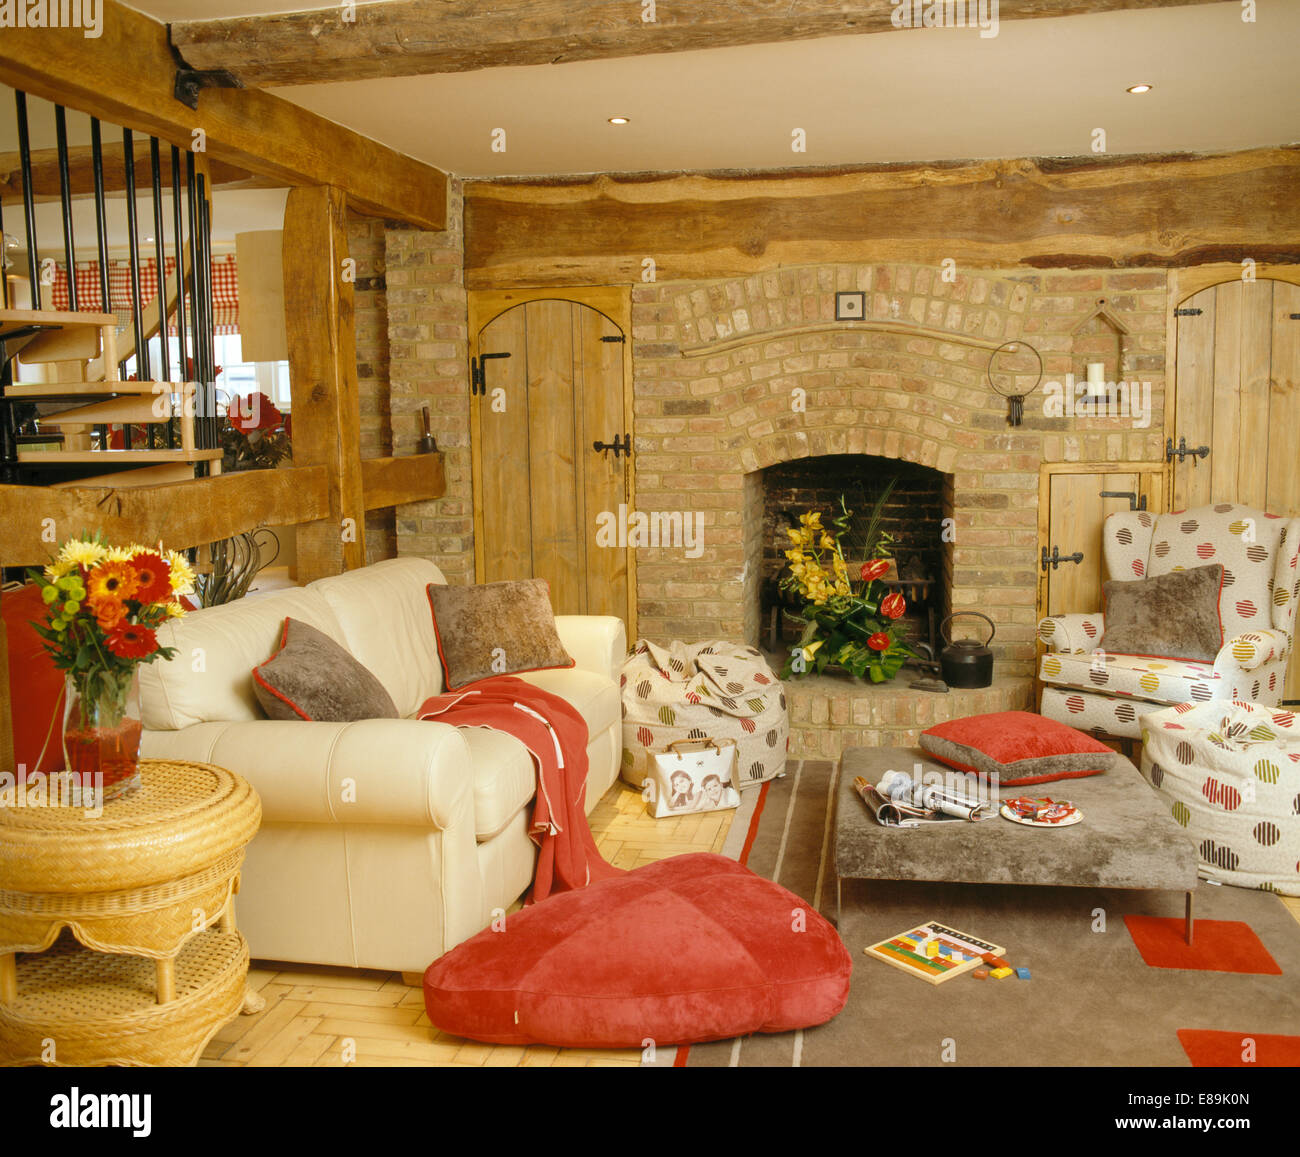 Red Floor Cushion Beside Cream Sofa In Country Living Room With Fireplace Exposed Brick Wall